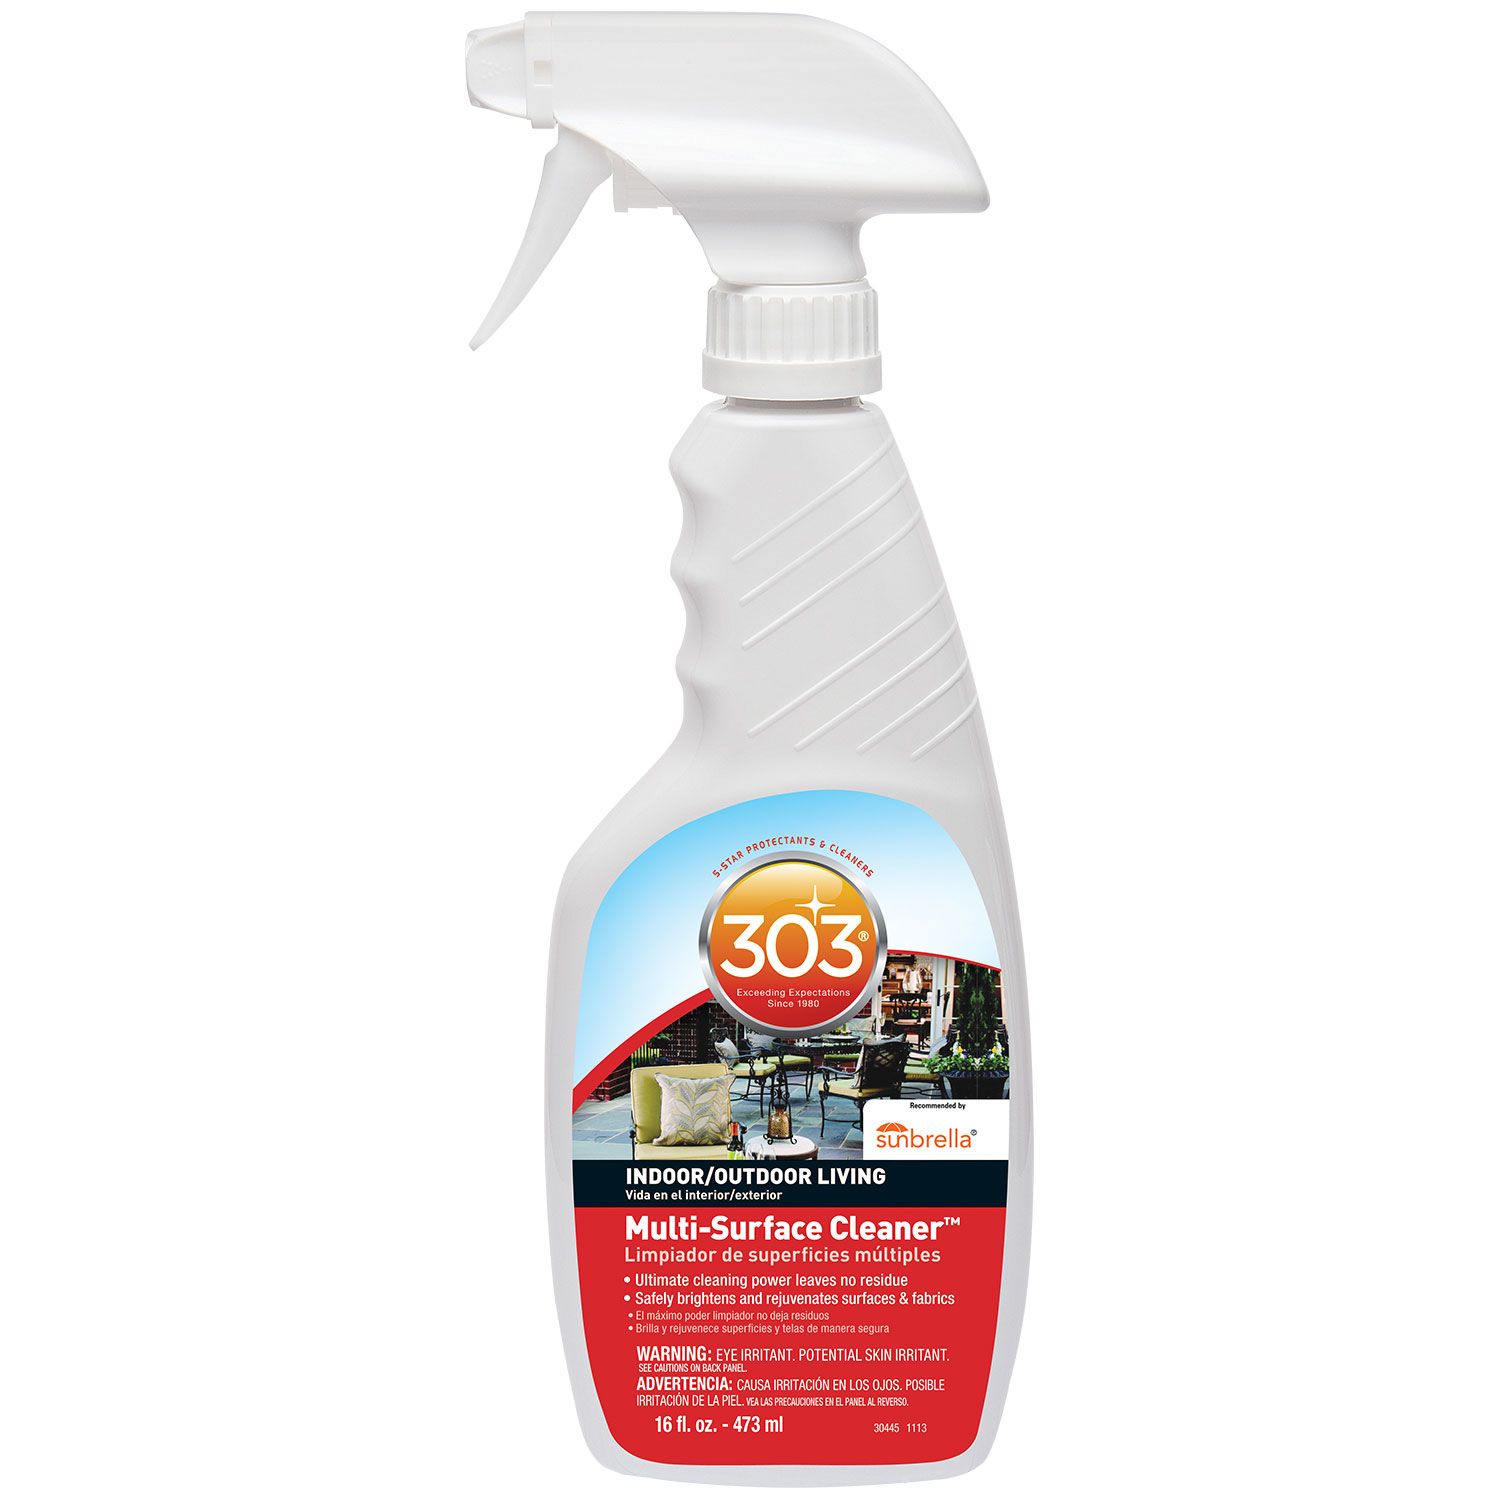 Cleaning Product, 303, Multi-Surface Cleaner, 16oz Spray Bottle